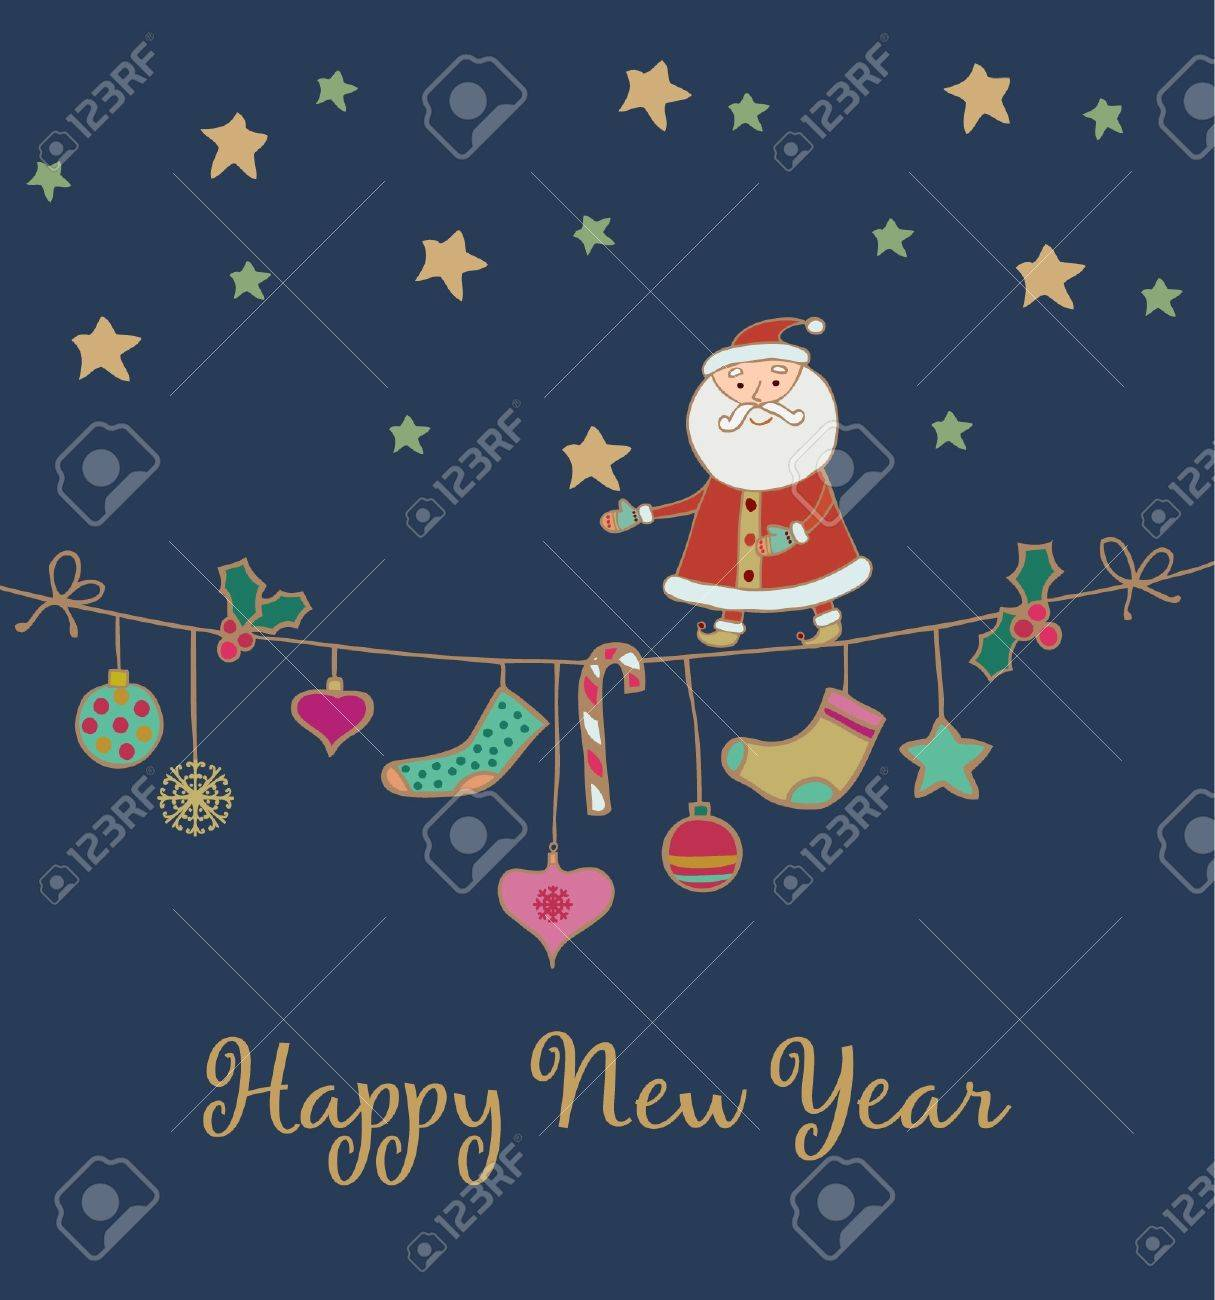 New Year s greeting card with hand drawn illustration  Template foe design  Festive background with place foe your text Stock Vector - 16944278